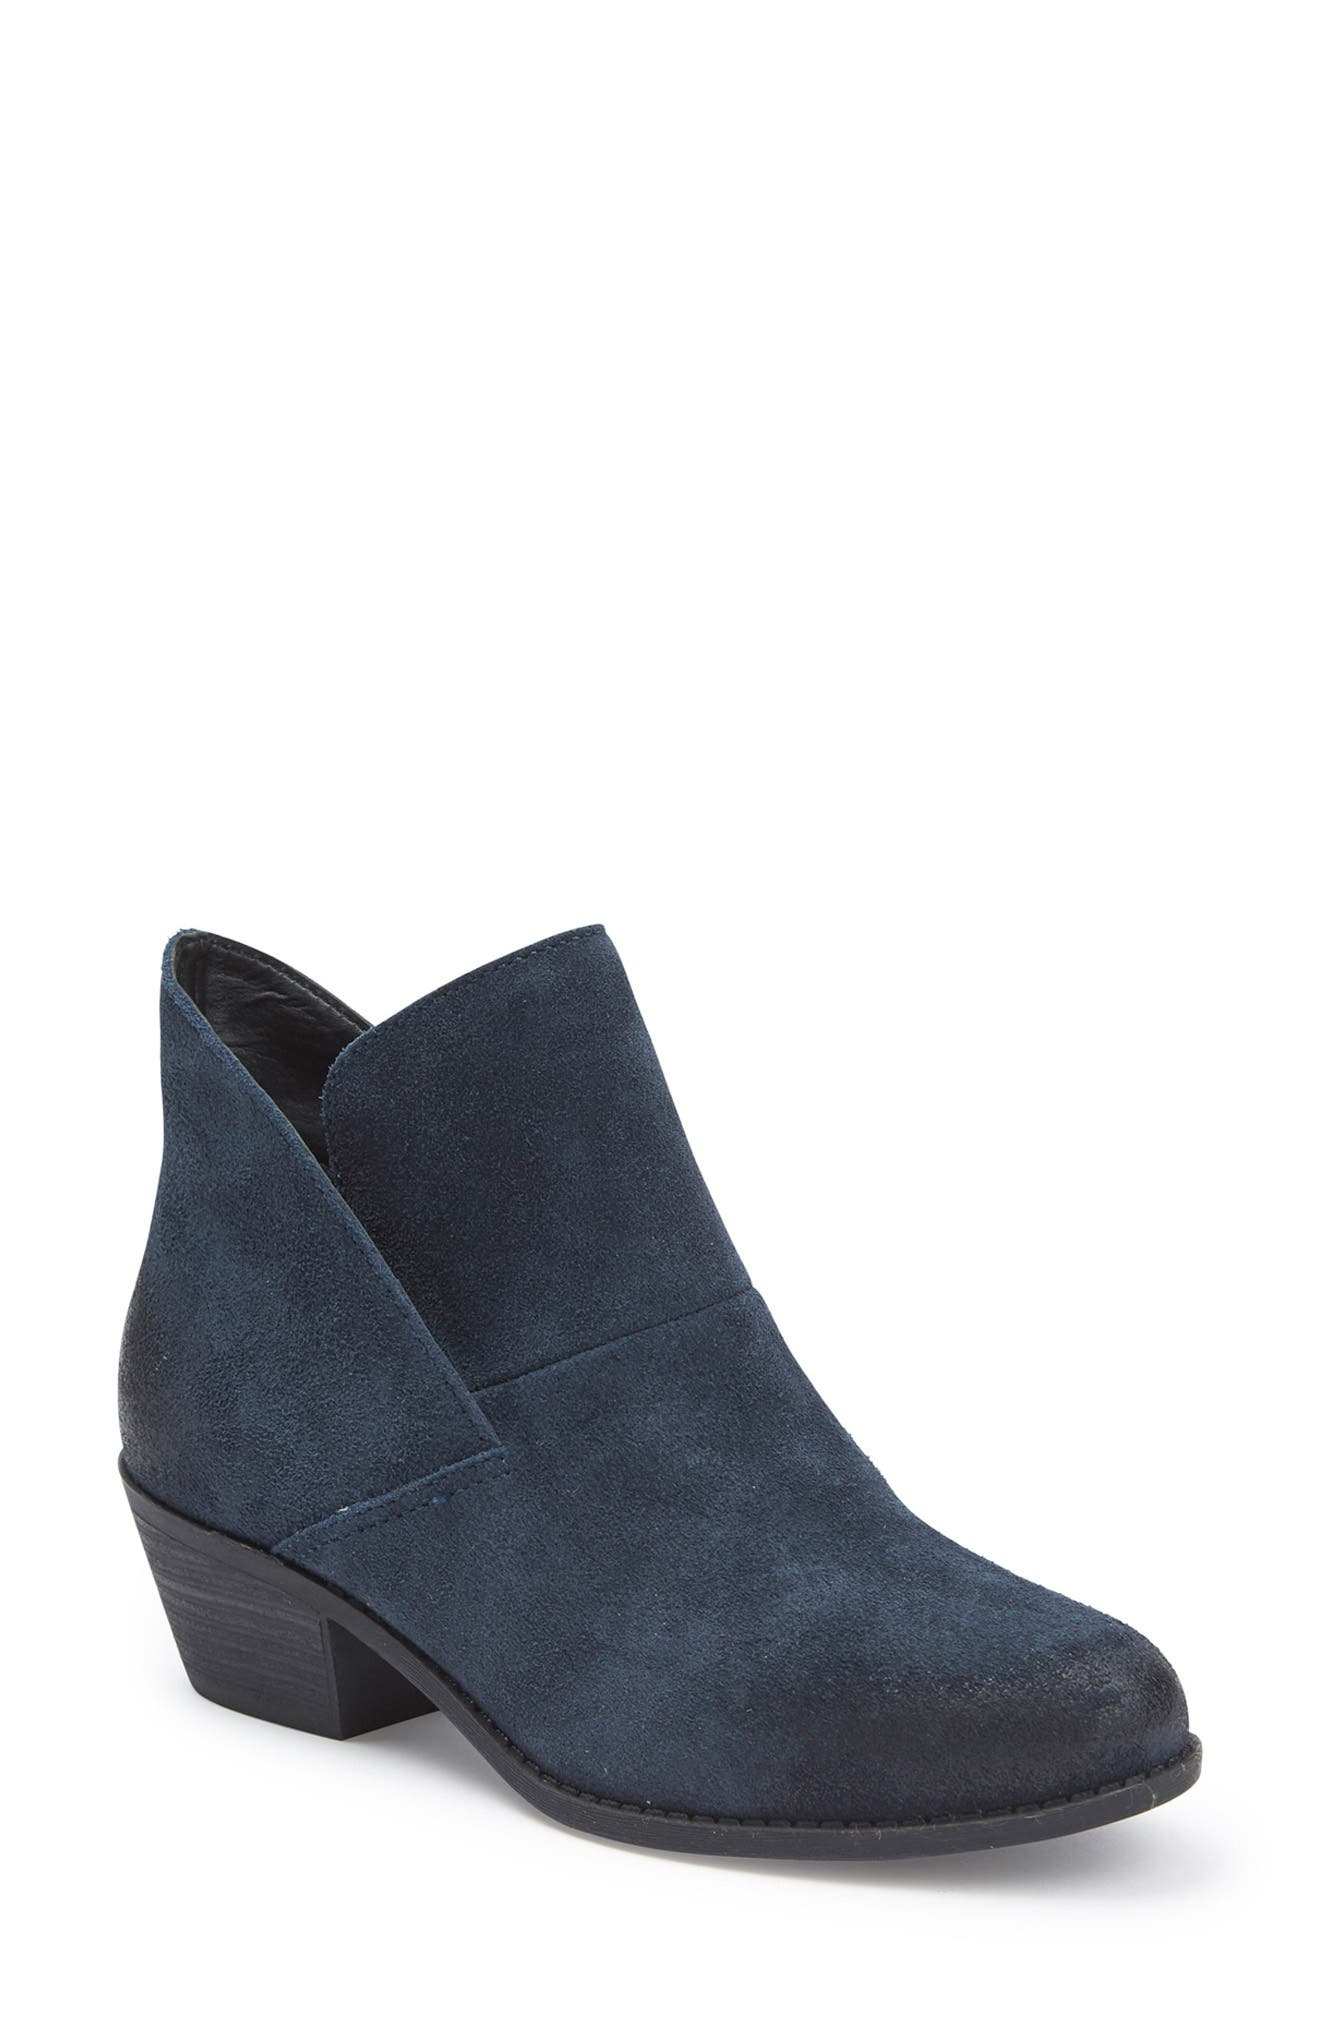 Alternate Image 1 Selected - Me Too Zena Ankle Boot (Women)